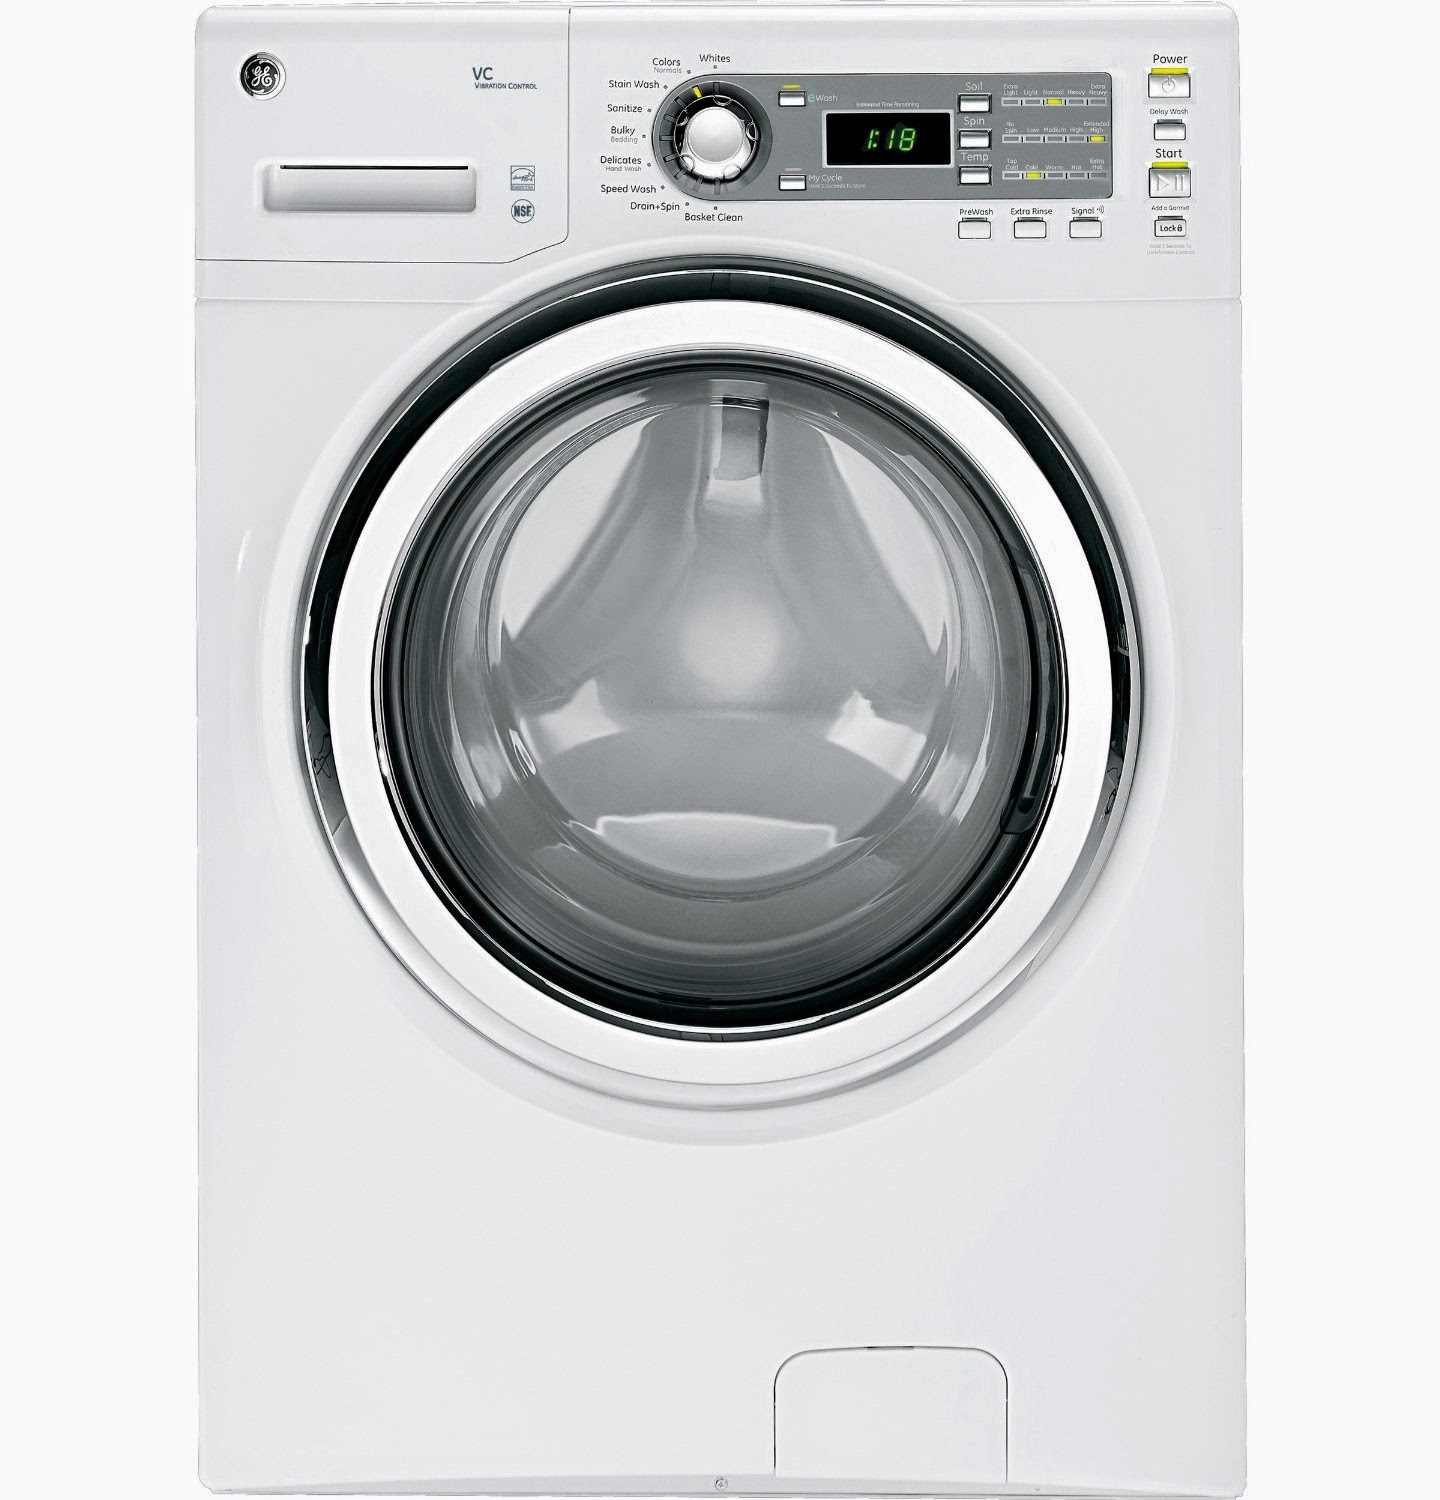 Miele stackable washer dryer ventless - Best Stackable Washer Dryer